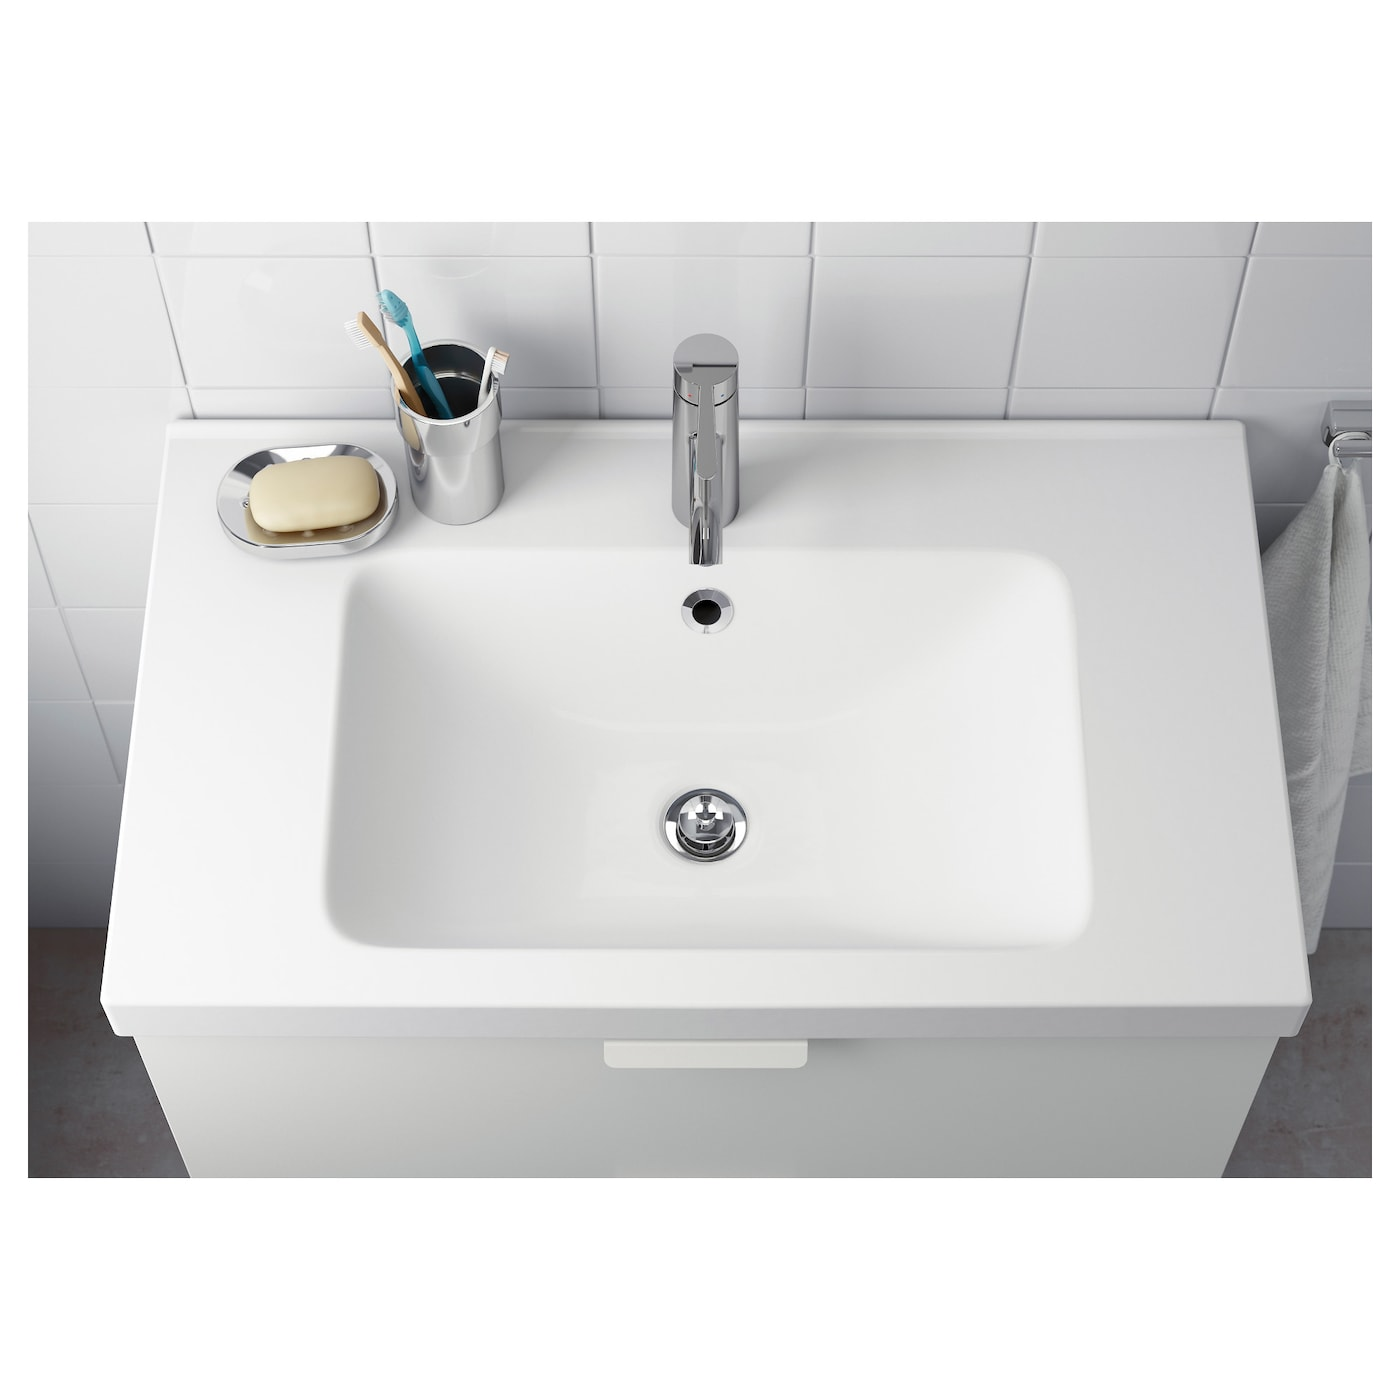 IKEA ODENSVIK single wash-basin 10 year guarantee. Read about the terms in the guarantee brochure.